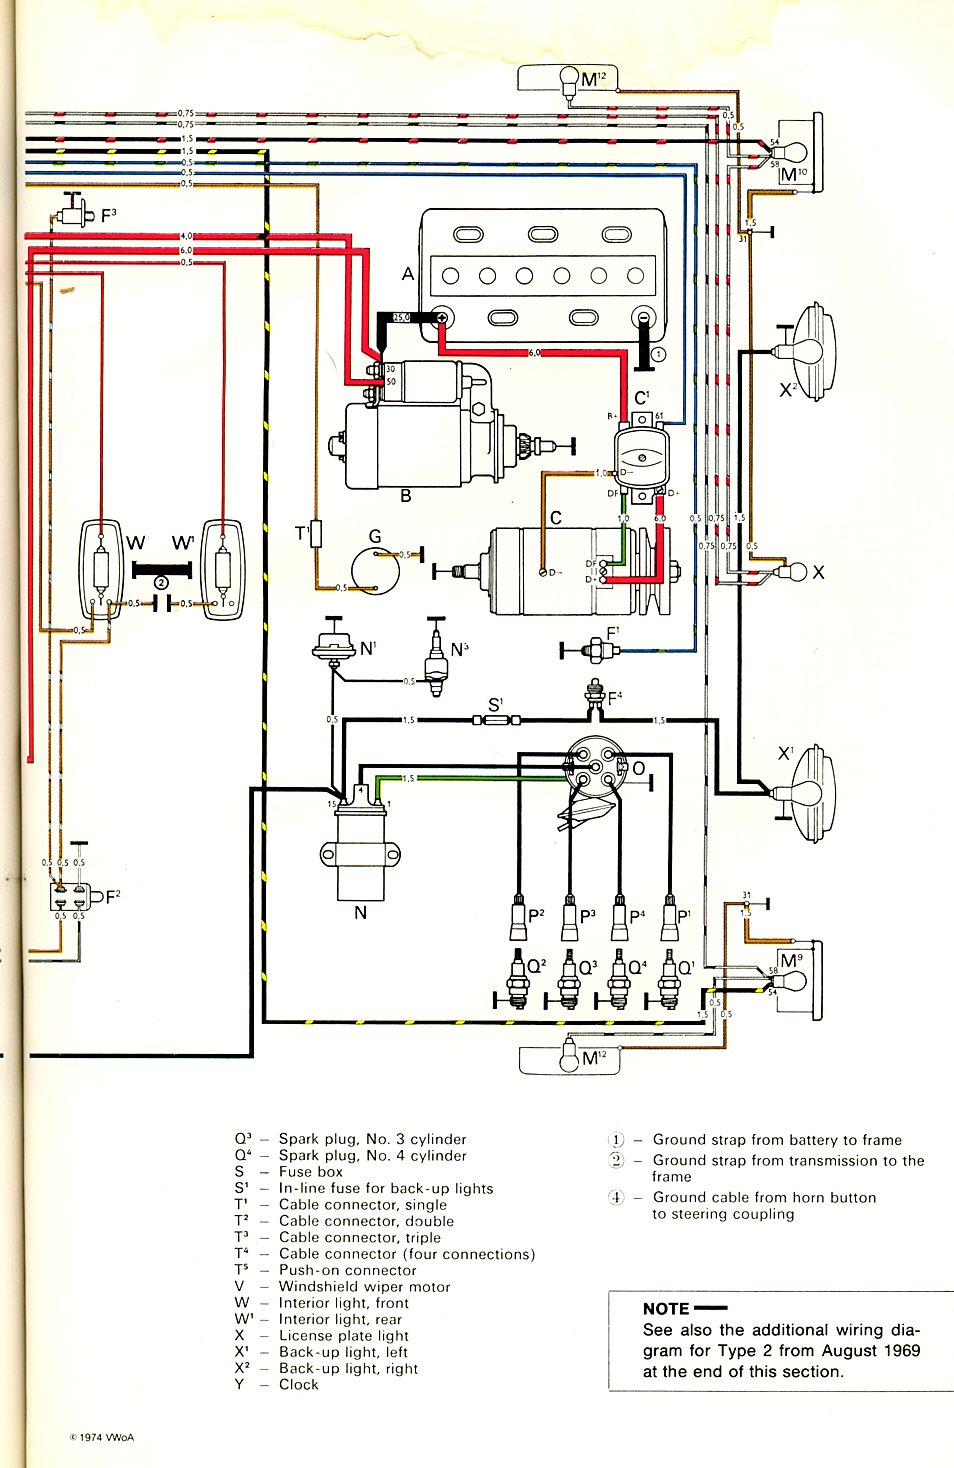 1977 International 1700 Diesel Wiring Diagram Worksheet And Truck Thesamba Com Type 2 Diagrams Rh 1986 Navistar Parts